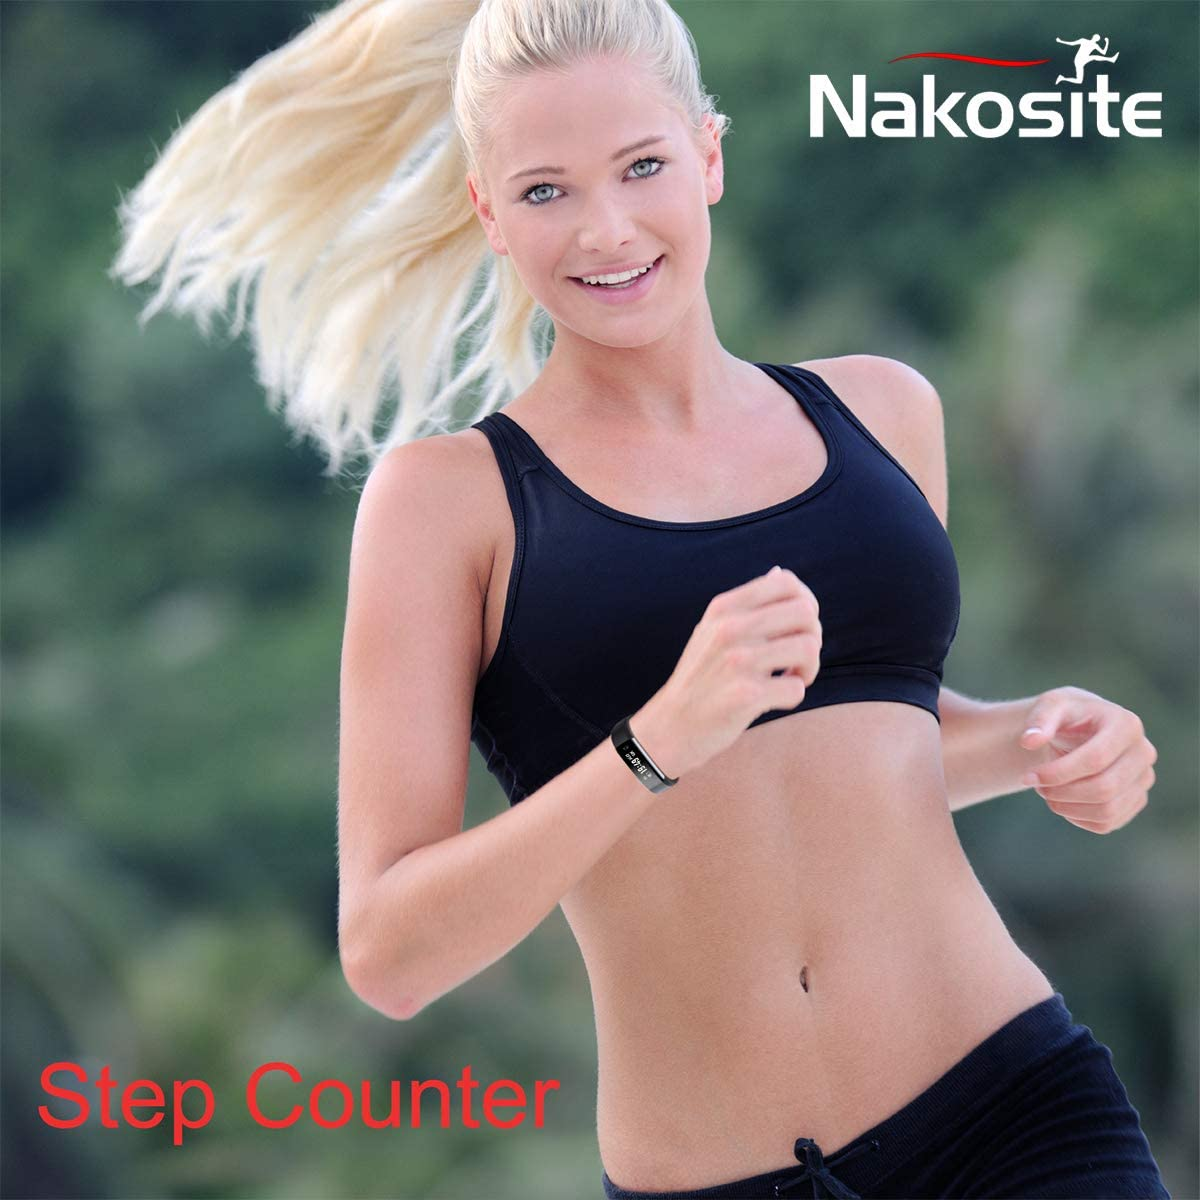 Android 5.0 and IOS 8 Blue strap NAKOSITE RAY2433 Smart Watches Fitness Trackers for men women and kids with Pedometer Step Counter Calorie Sleep Distance Monitor Activity Tracker watch,Bluetooth 4.0